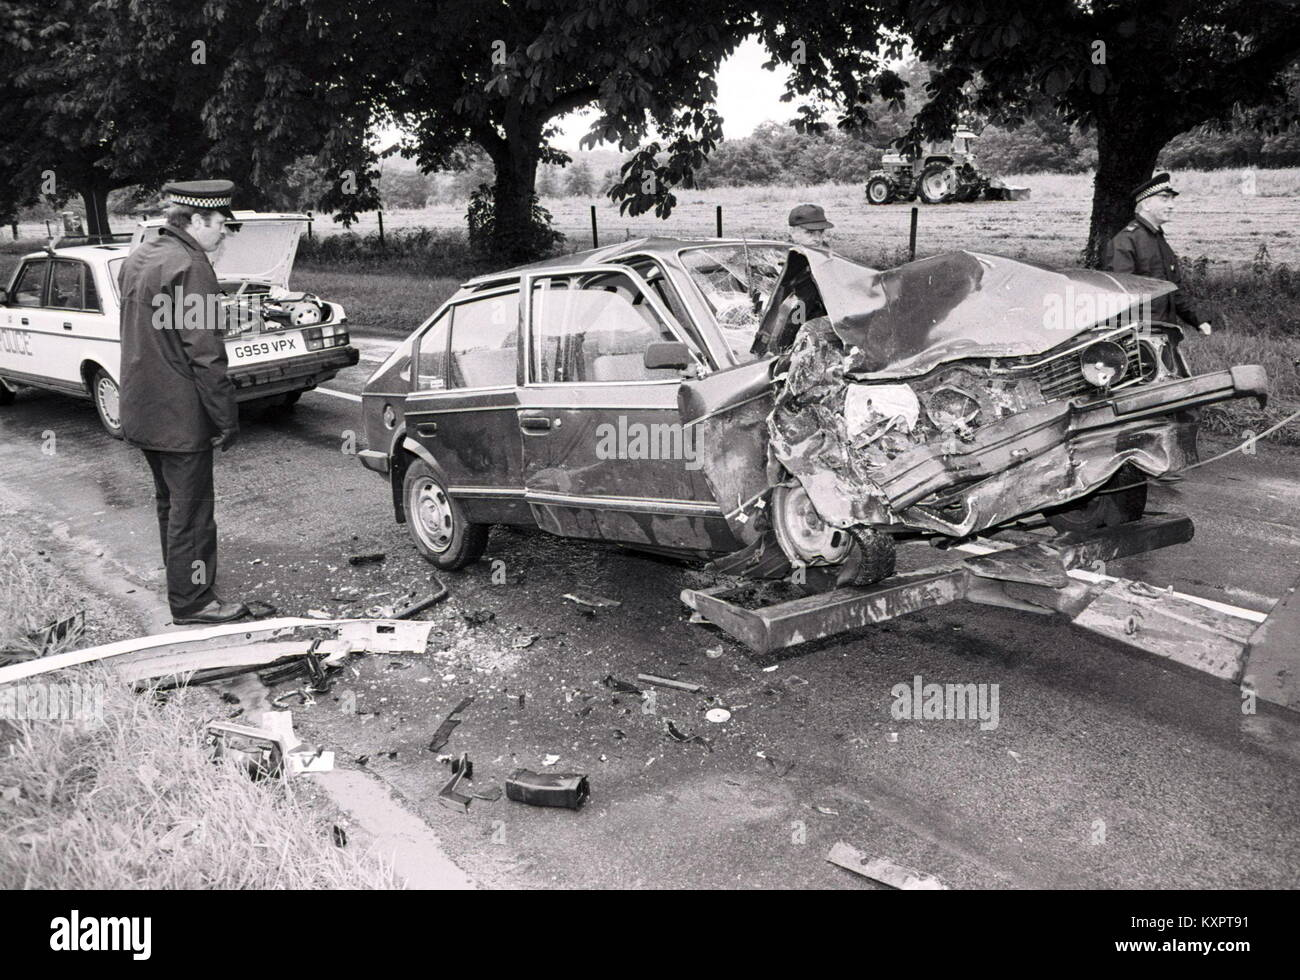 1980s Car Stock Photos Amp 1980s Car Stock Images Alamy